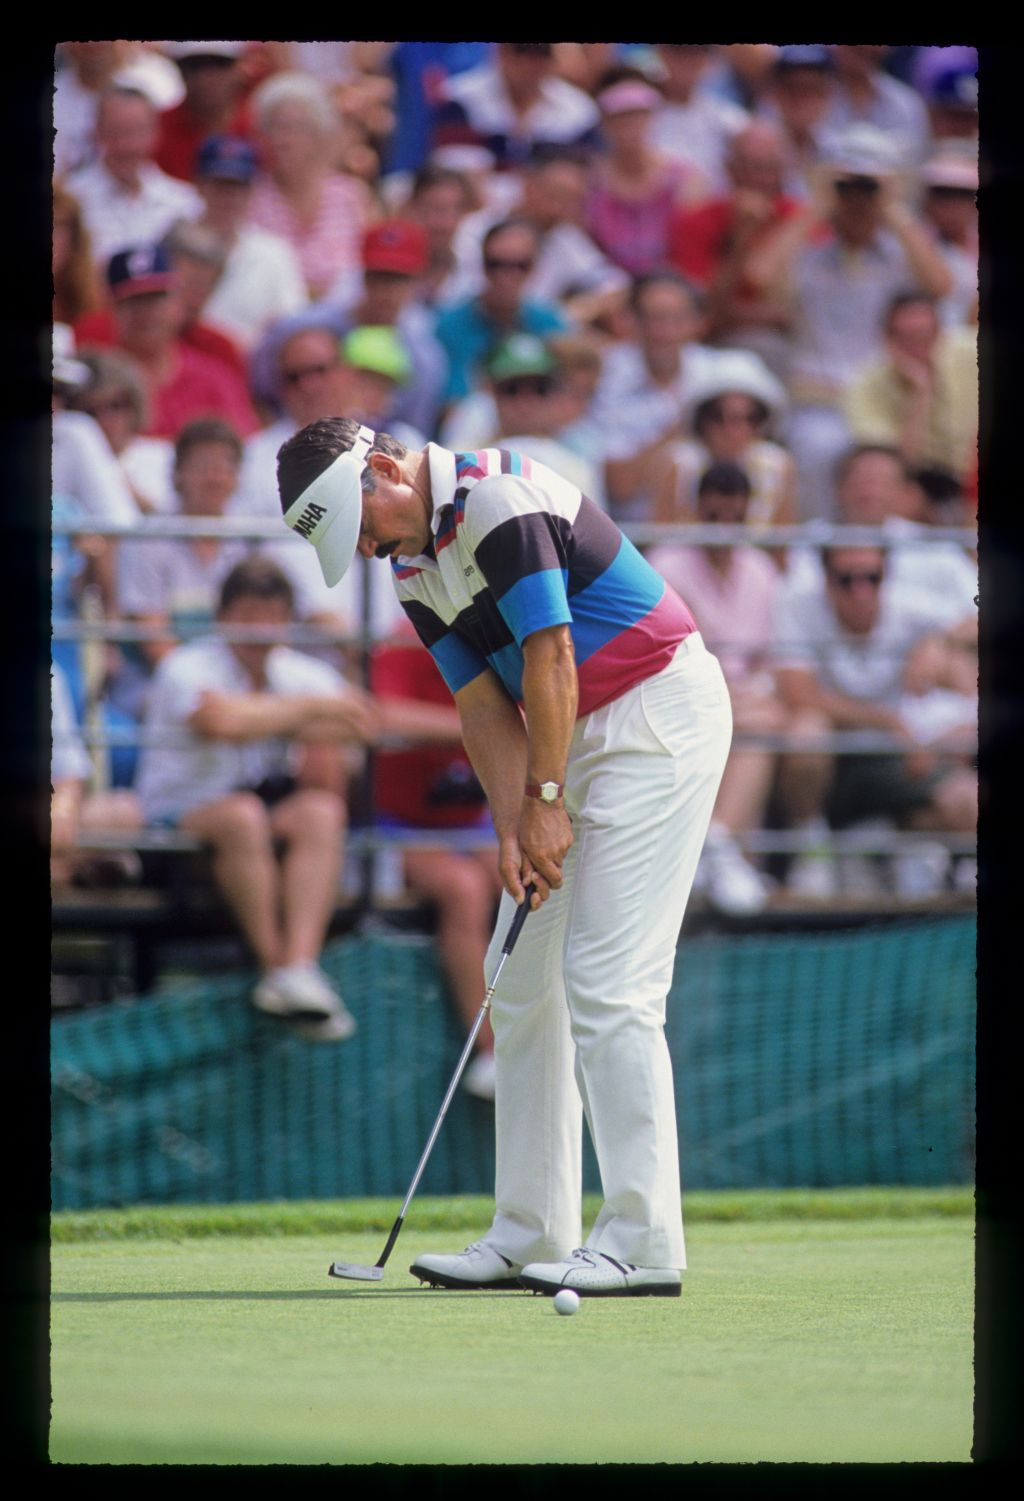 Scott Simpson sending a putt on its way in front of the gallery during the 1990 US Open